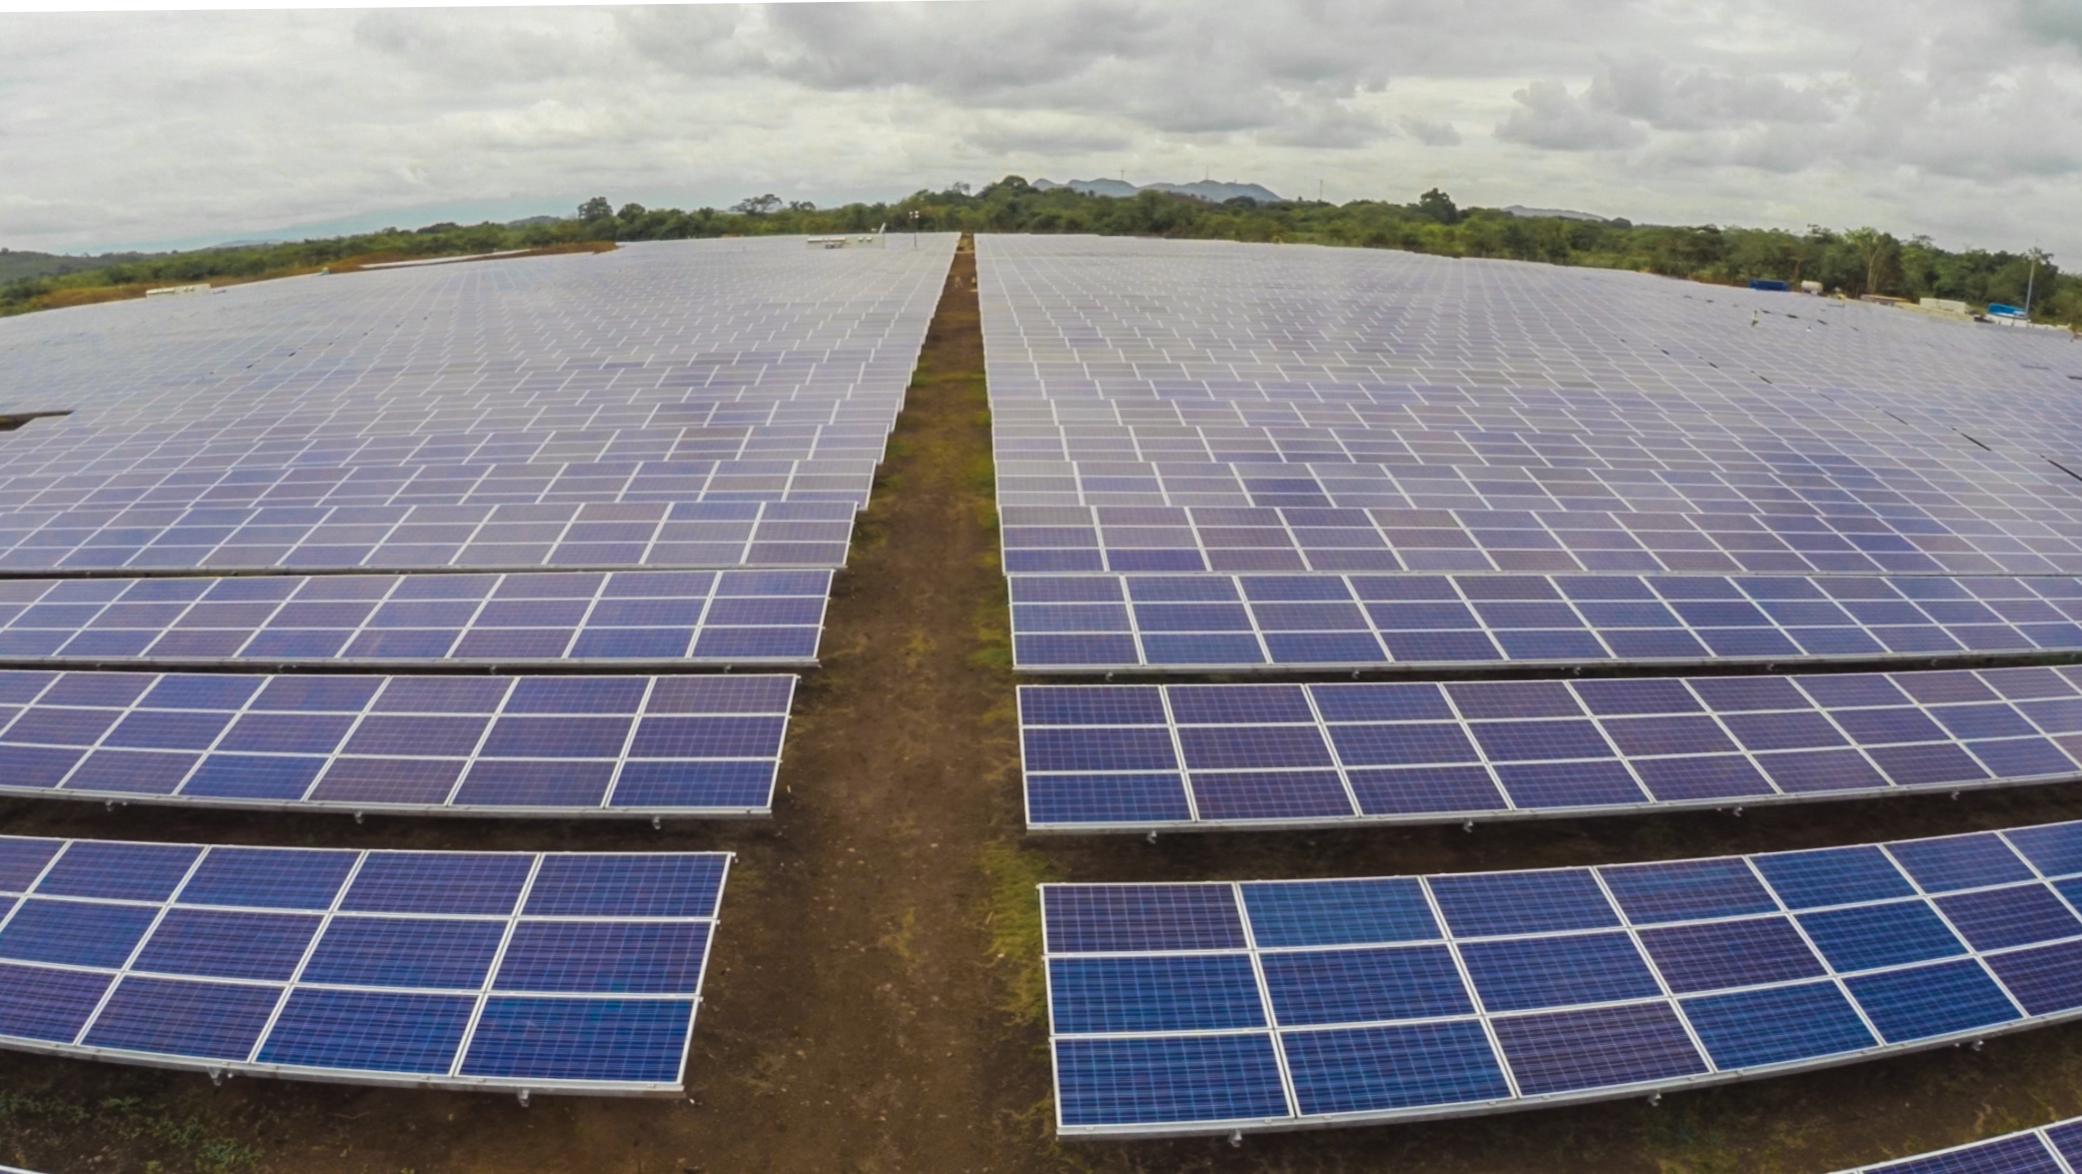 in January, UK-based firm Solarcentury and Encavis started construction on the US$250.5 million Talayuela Solar Project in Spain. Credit: SolarCentury